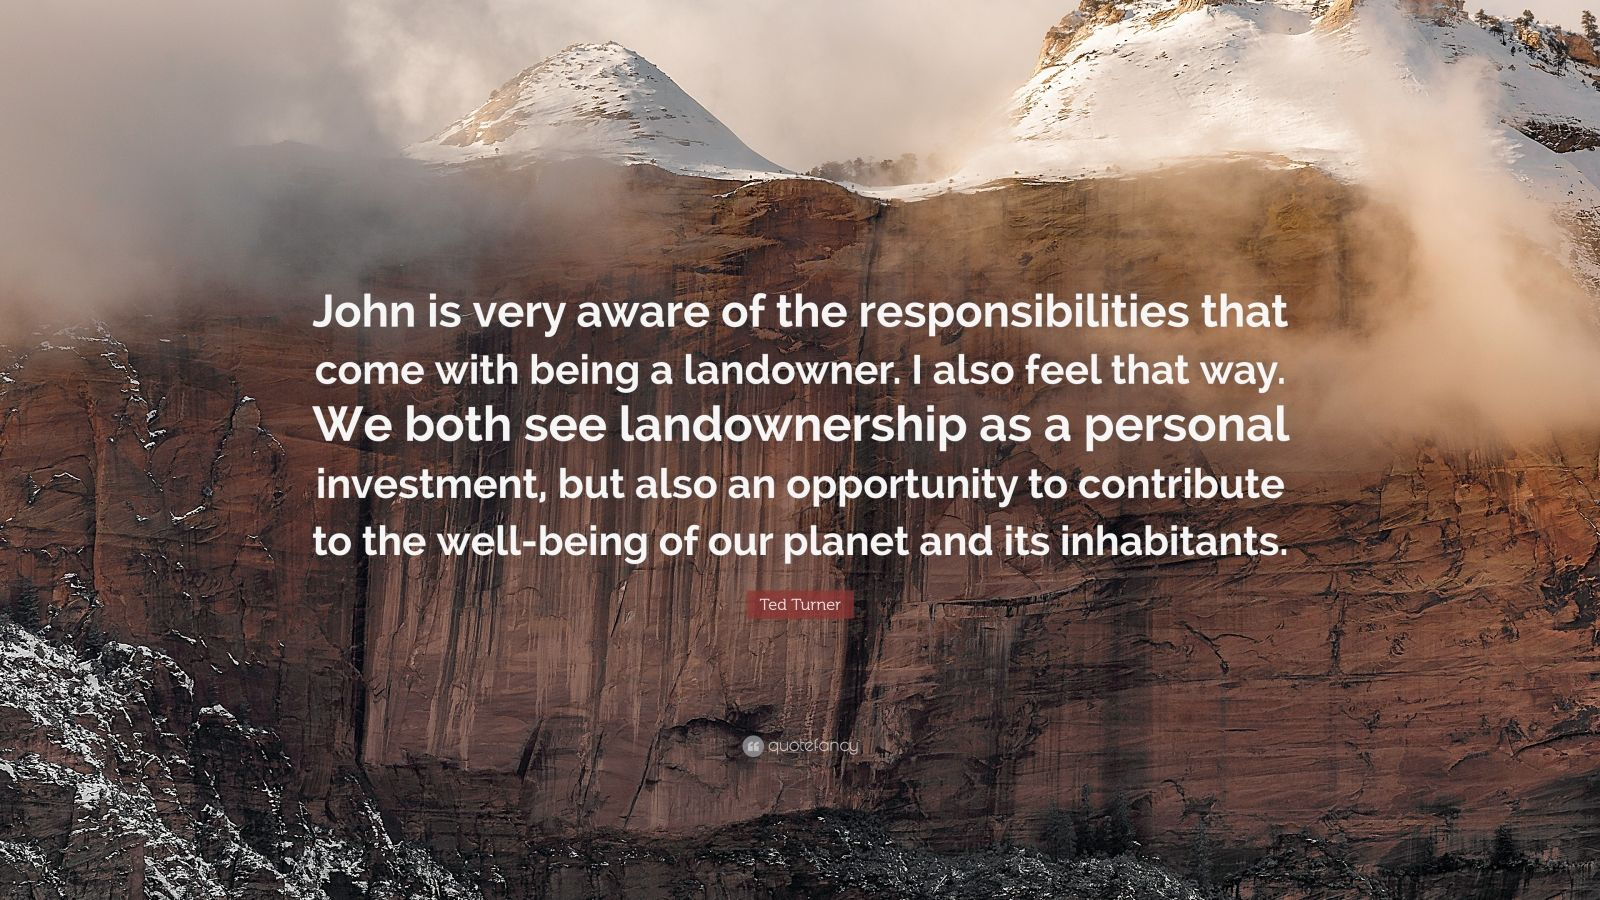 "Ted Turner Quote: ""John is very aware of the responsibilities that come with being a landowner. I also feel that way. We both see landownership as a personal investment, but also an opportunity to contribute to the well-being of our planet and its inhabitants."""